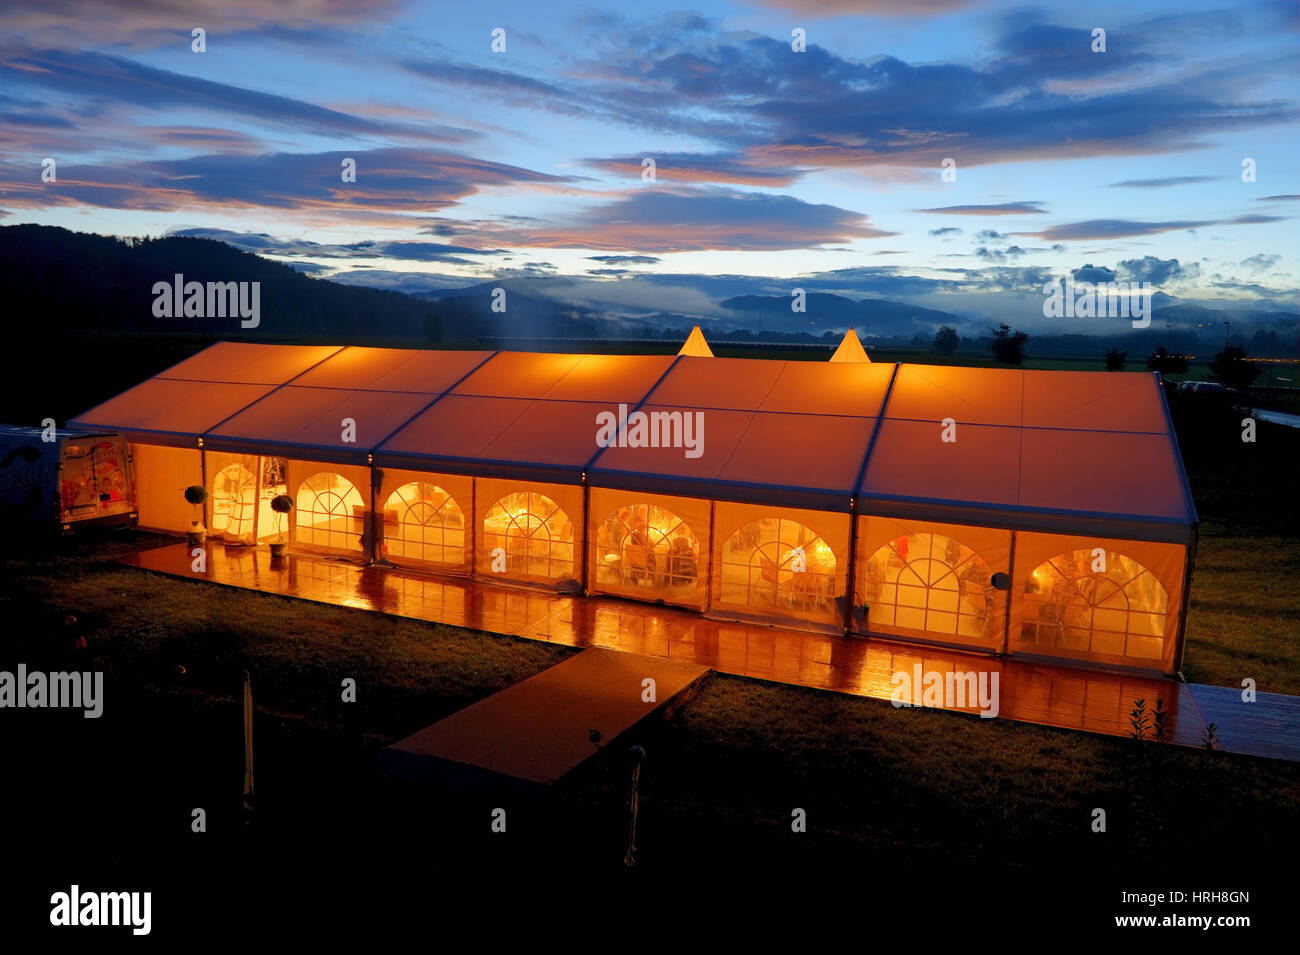 Beleuchtetes Partyzelt - illuminated party tent - Stock Image